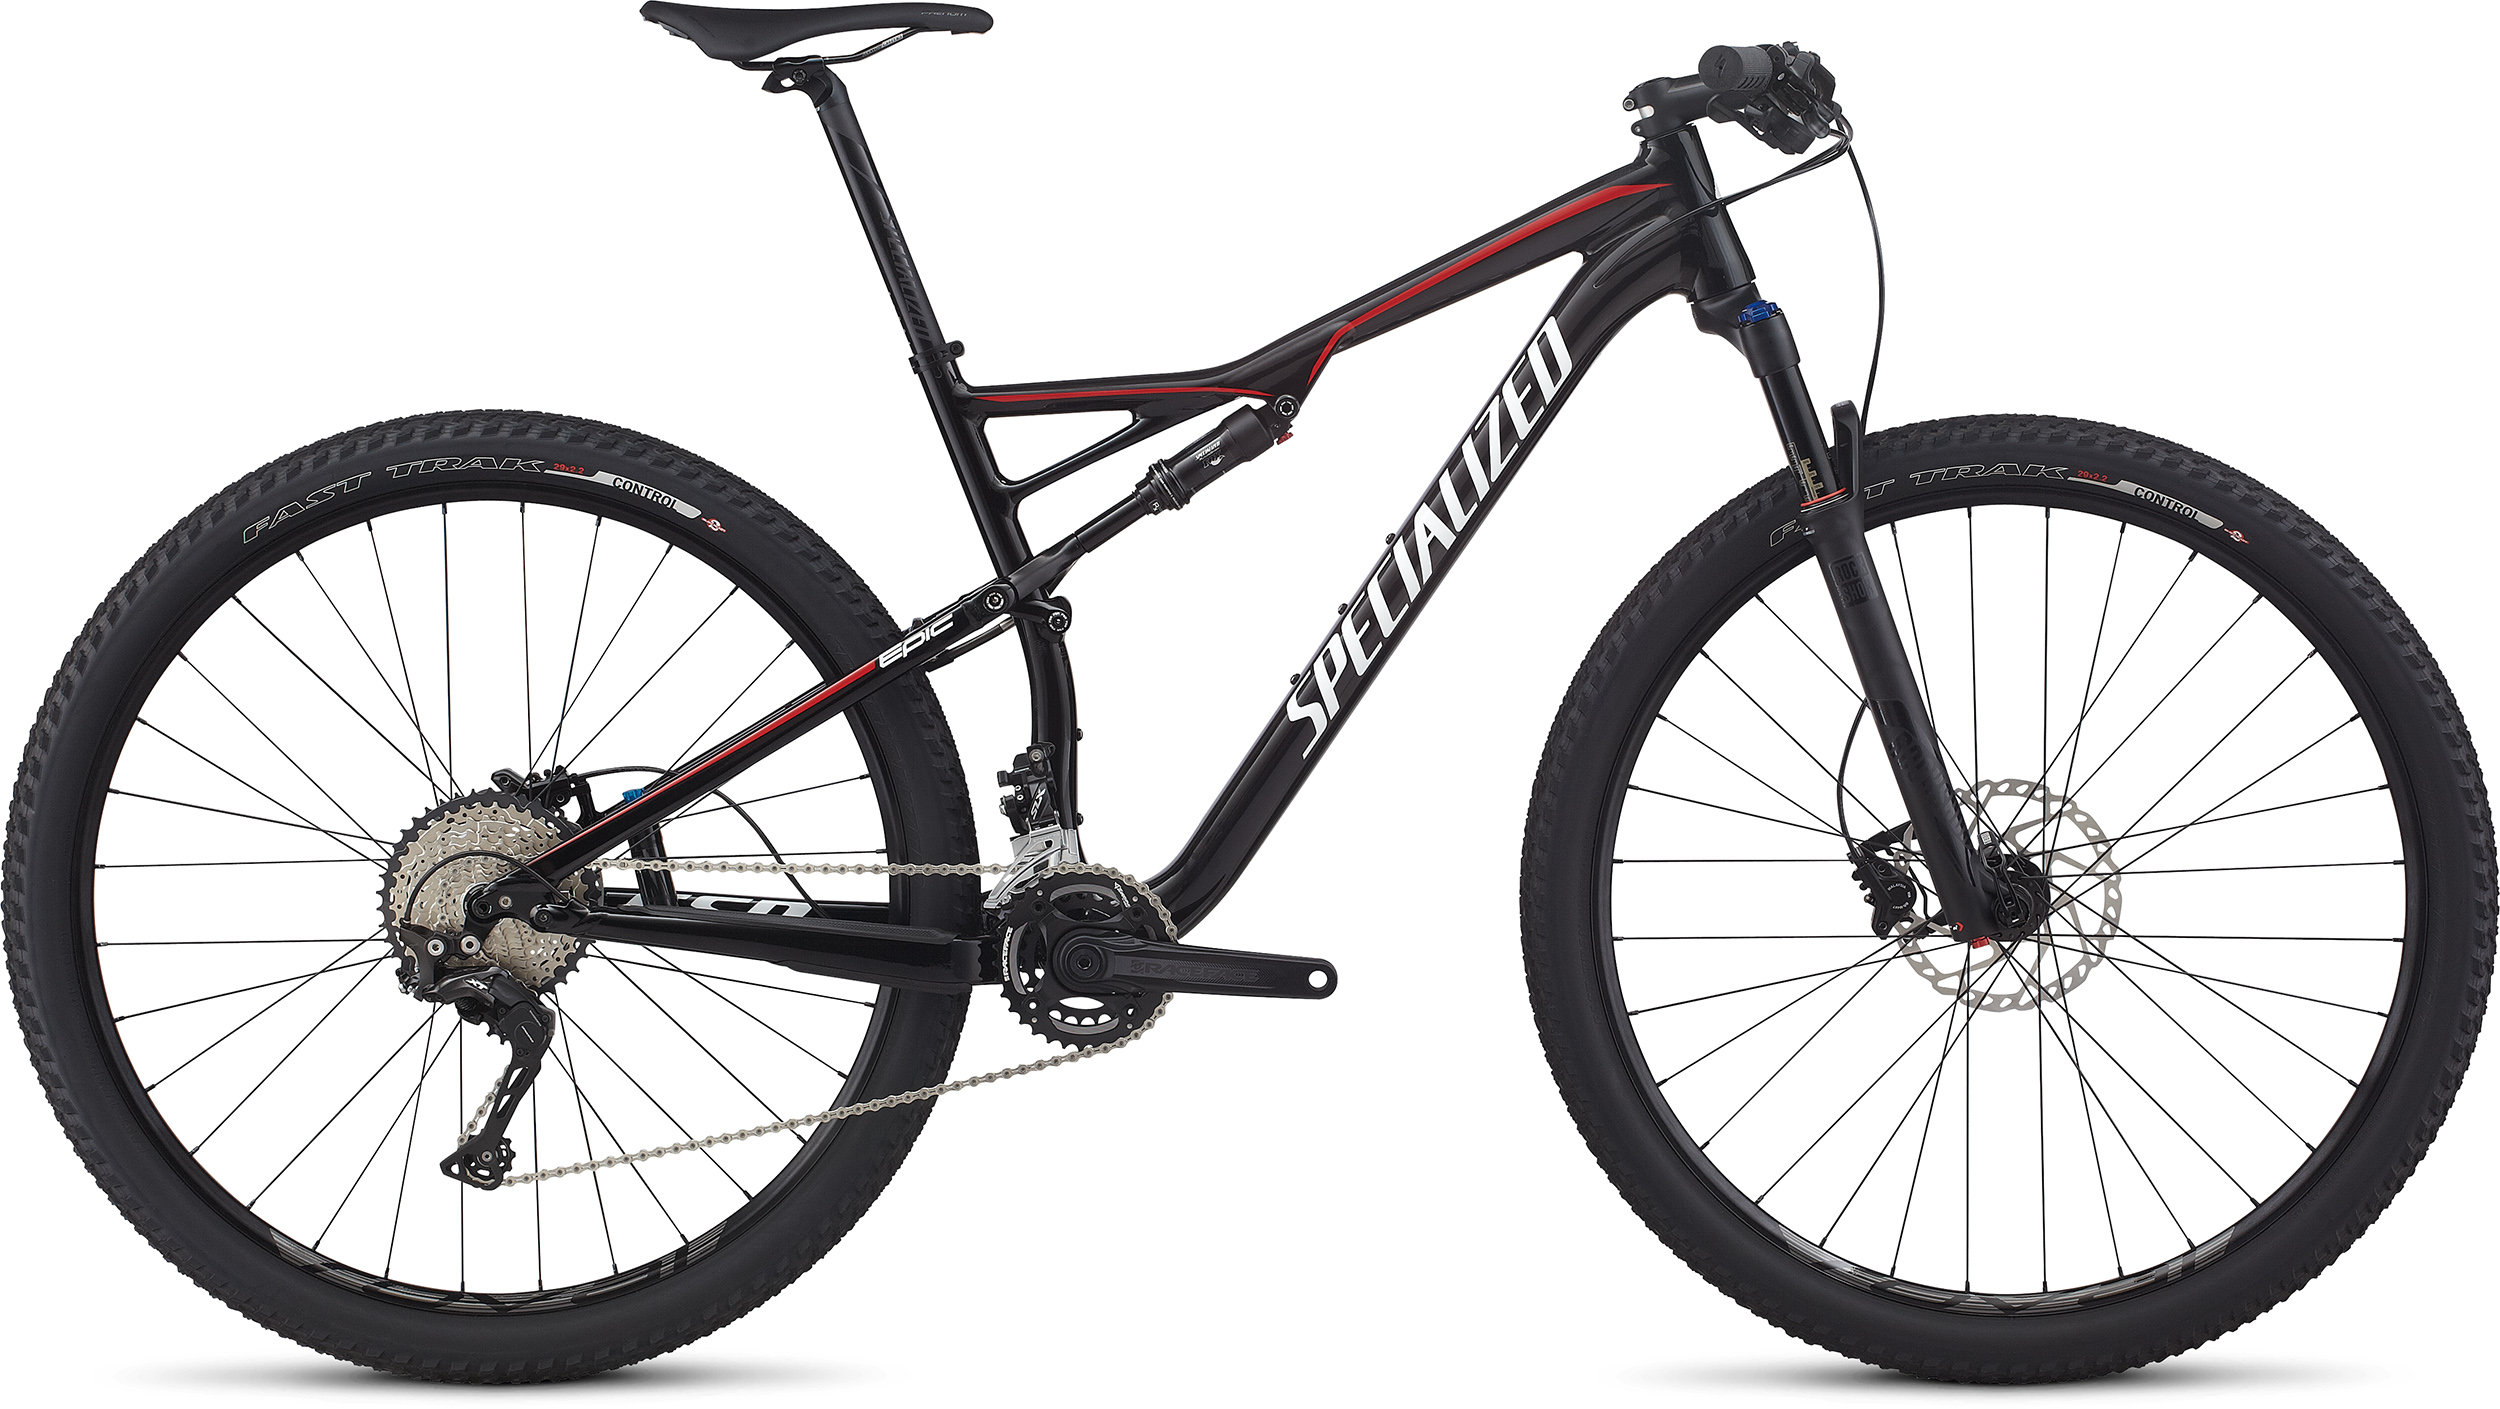 SPECIALIZED EPIC FSR COMP 29 BLK/WHT/FLORED S - SPECIALIZED EPIC FSR COMP 29 BLK/WHT/FLORED S